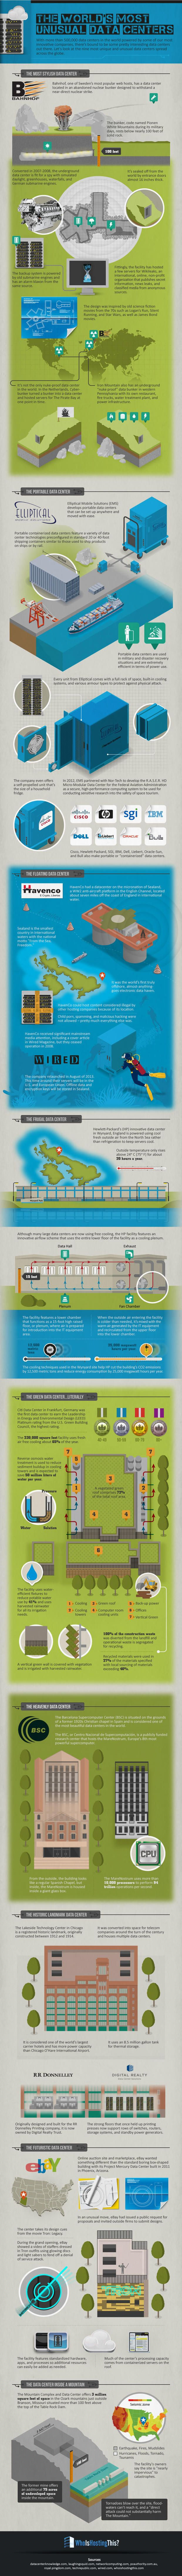 The world's most unusual data centers #infographic